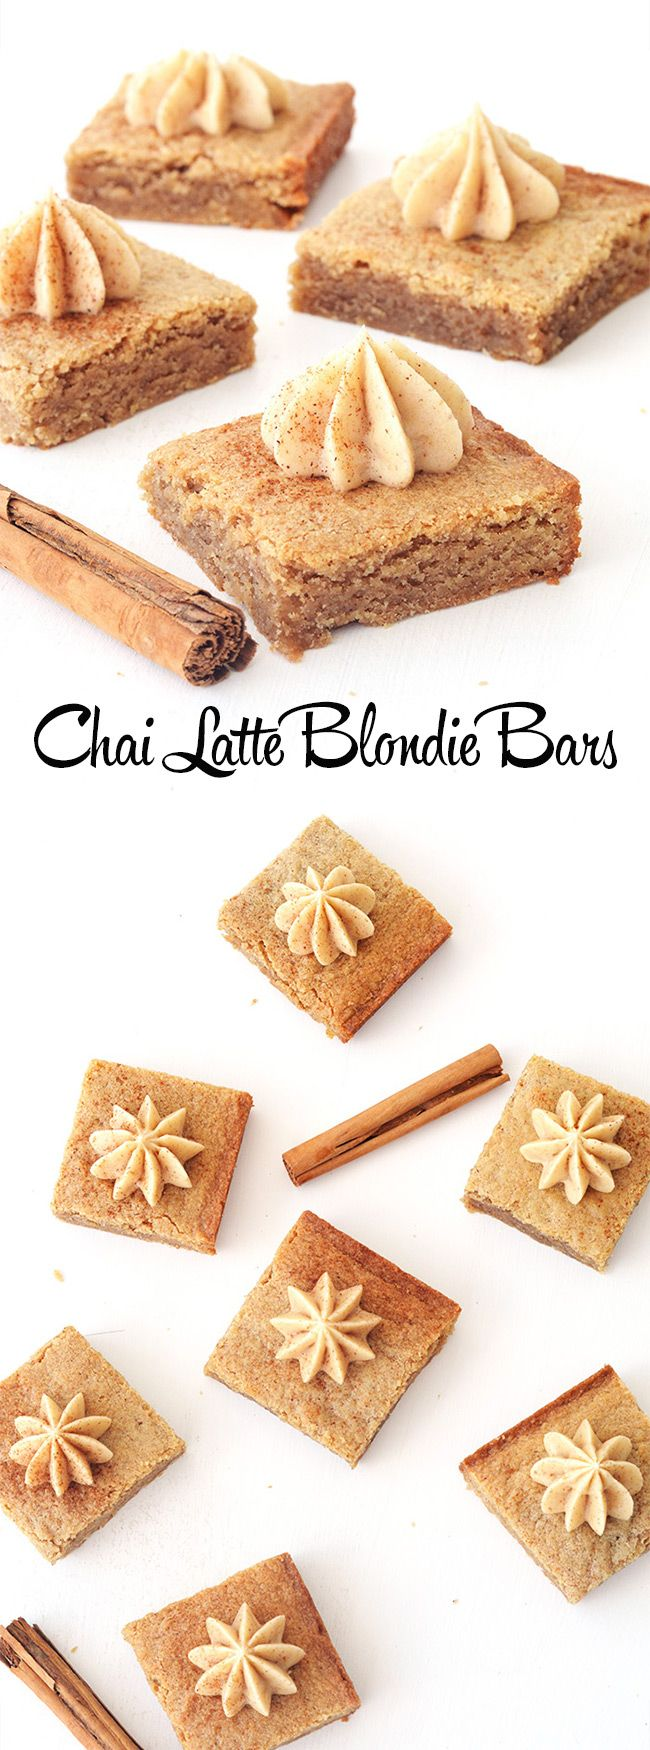 Chai Spiced Blondie Bars for all the chai latte and chai tea lovers out there - Sweetest Menu